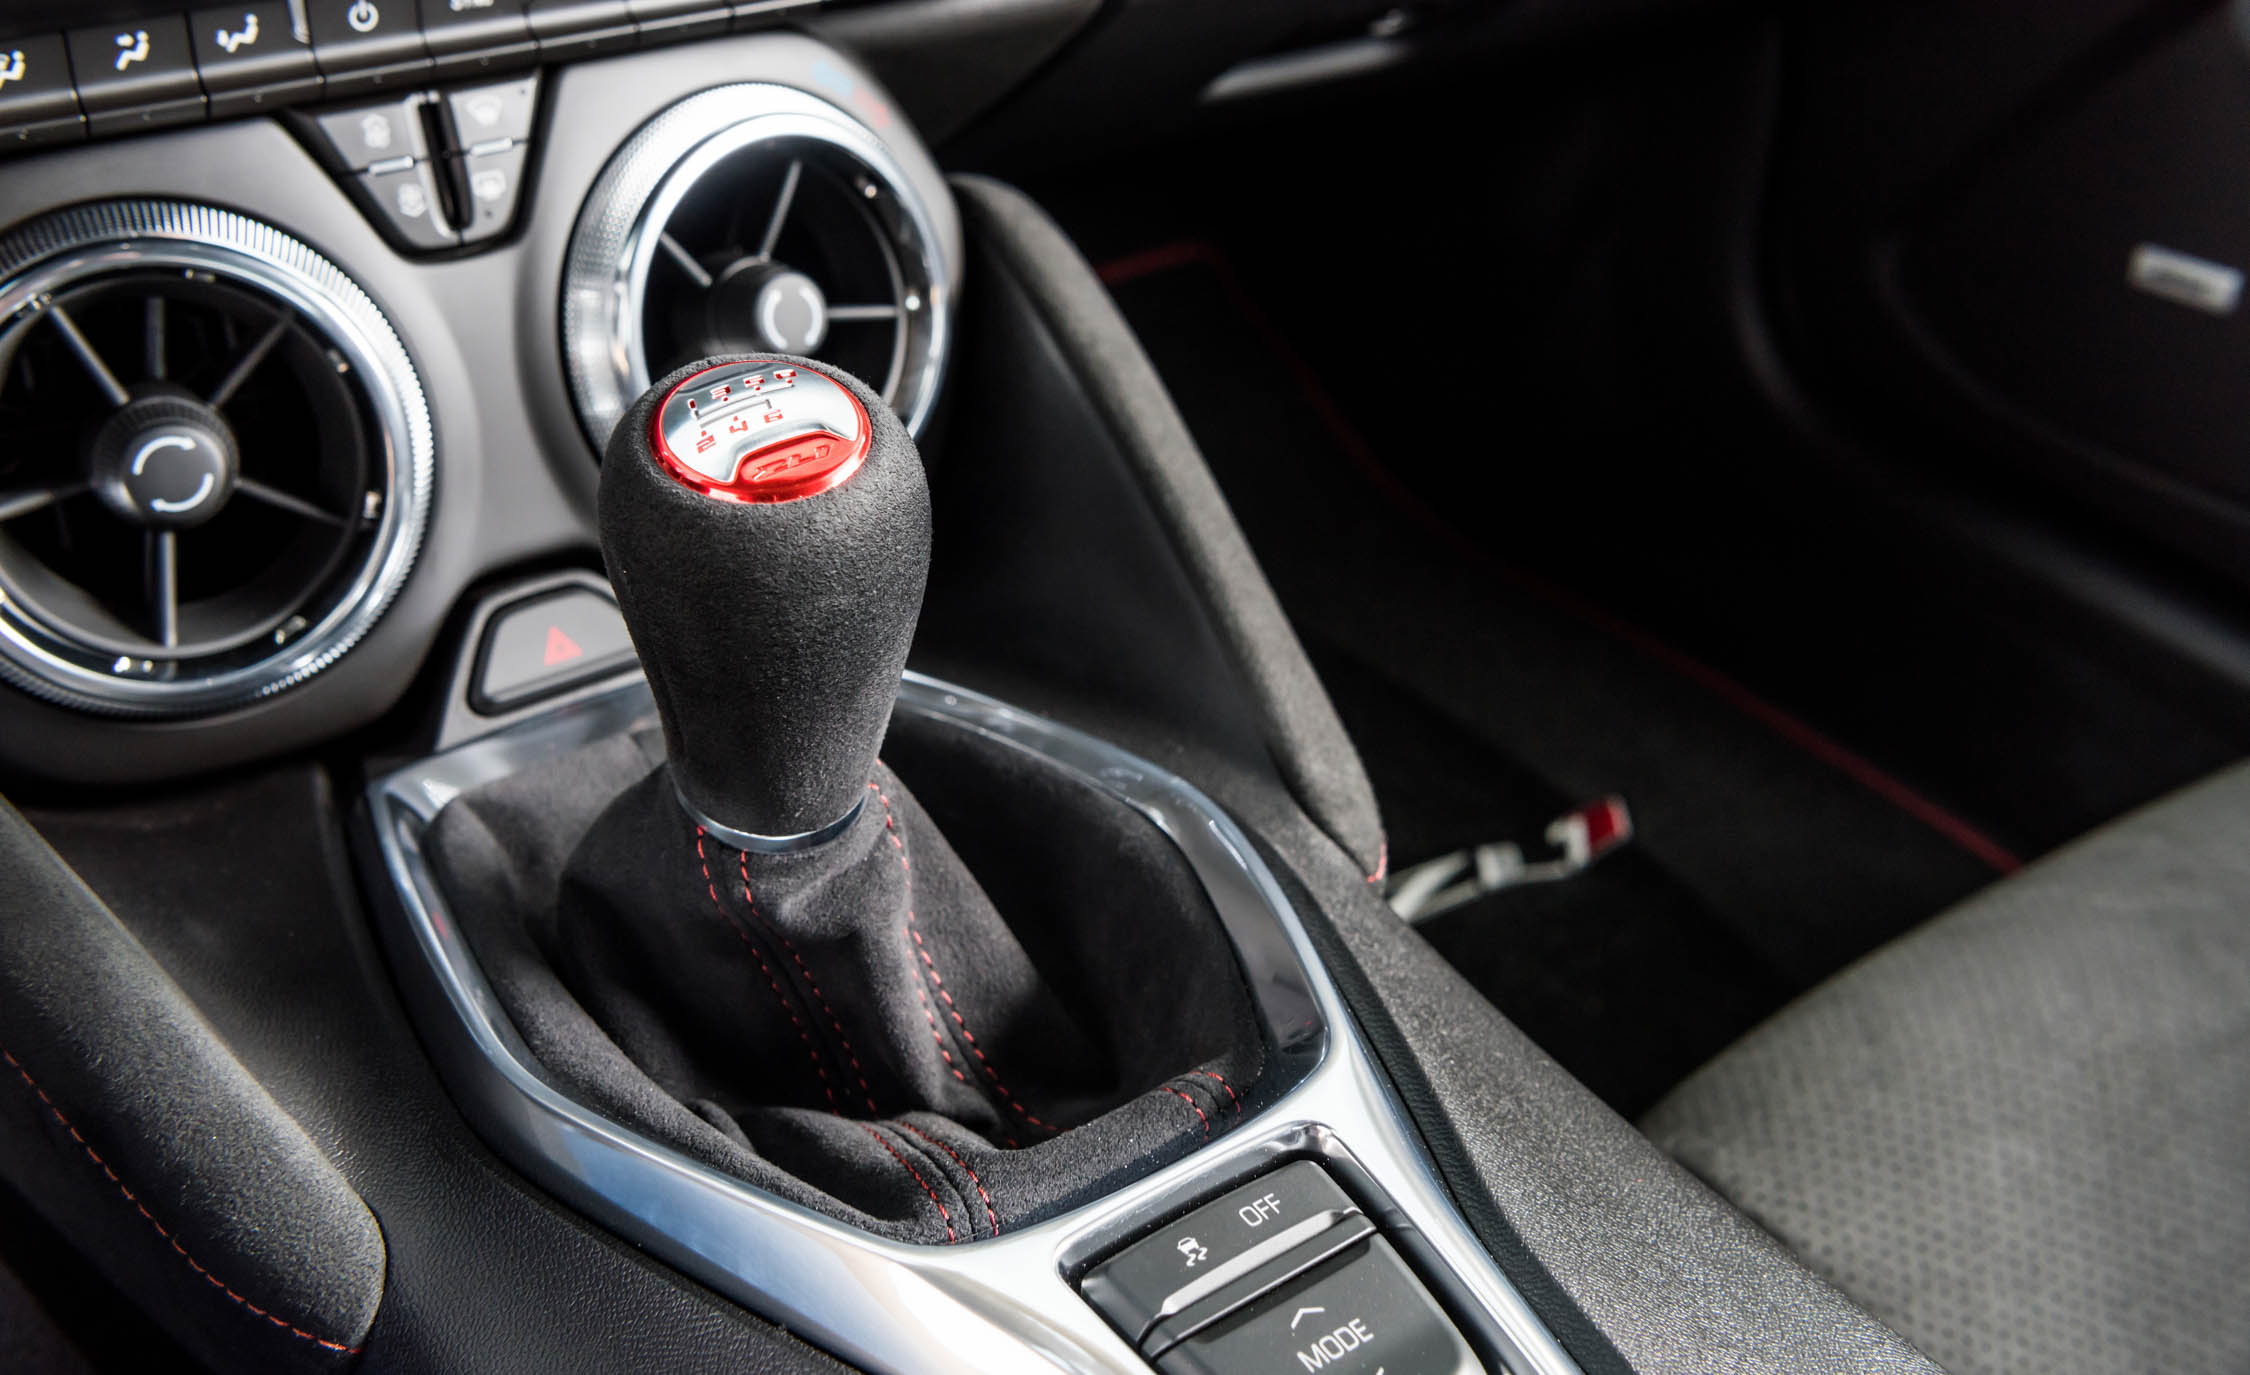 2017 Chevrolet Camaro ZL1 Interior View Gear Shift Knob (Photo 28 of 62)